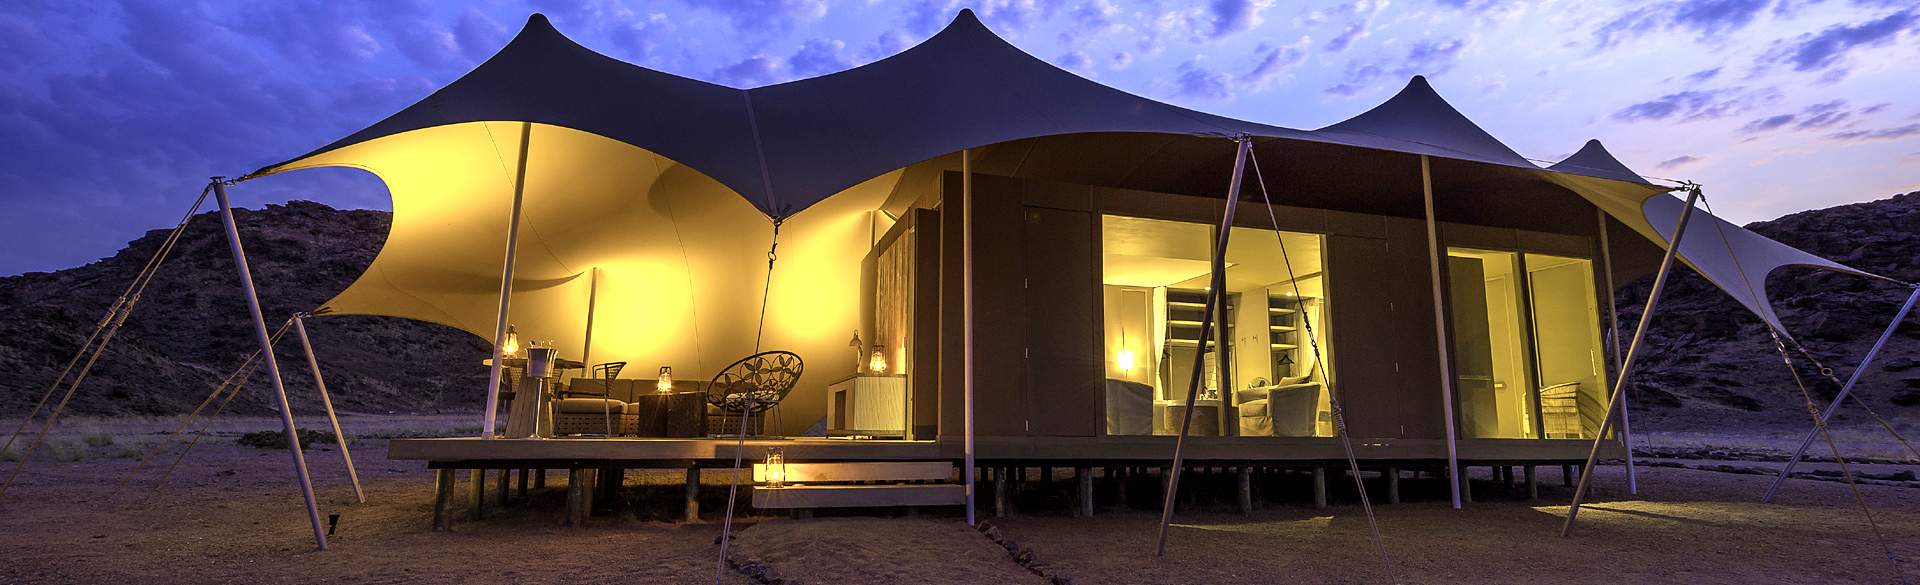 Hoanib Skeleton Coast tent by Dana Allen courtesy Wilderness Safaris